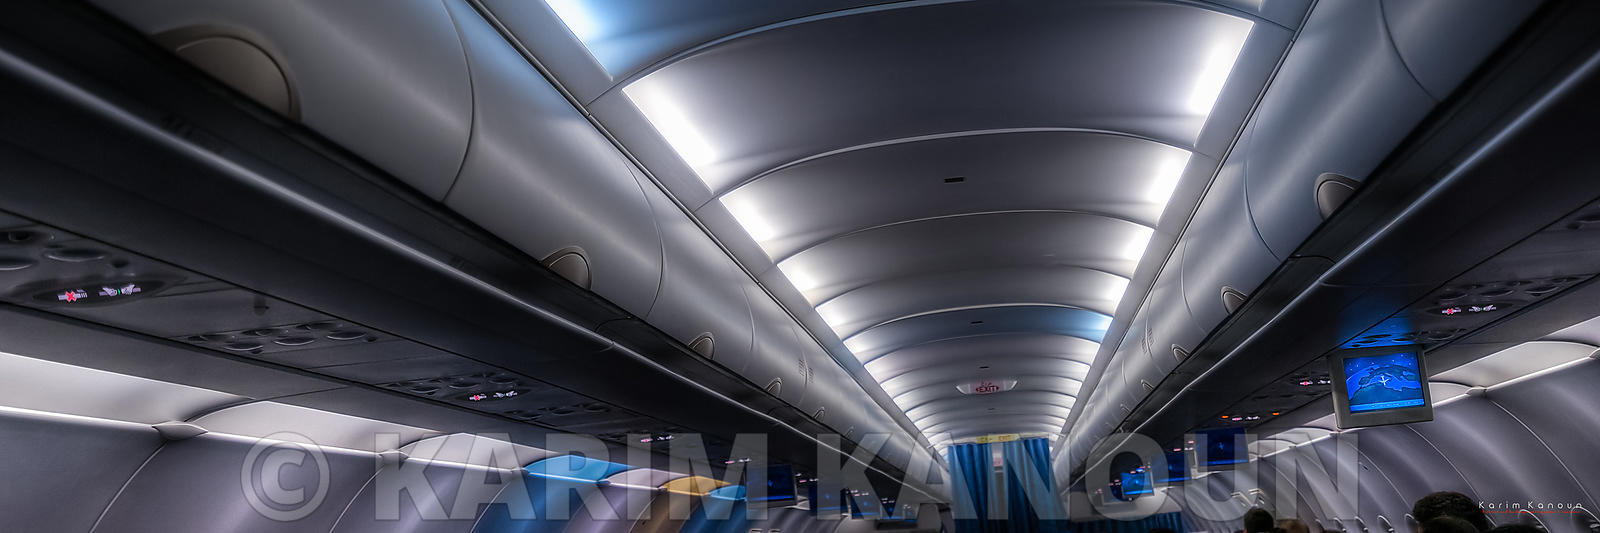 Panorama - Inside a futuristic airplane - Tunisair